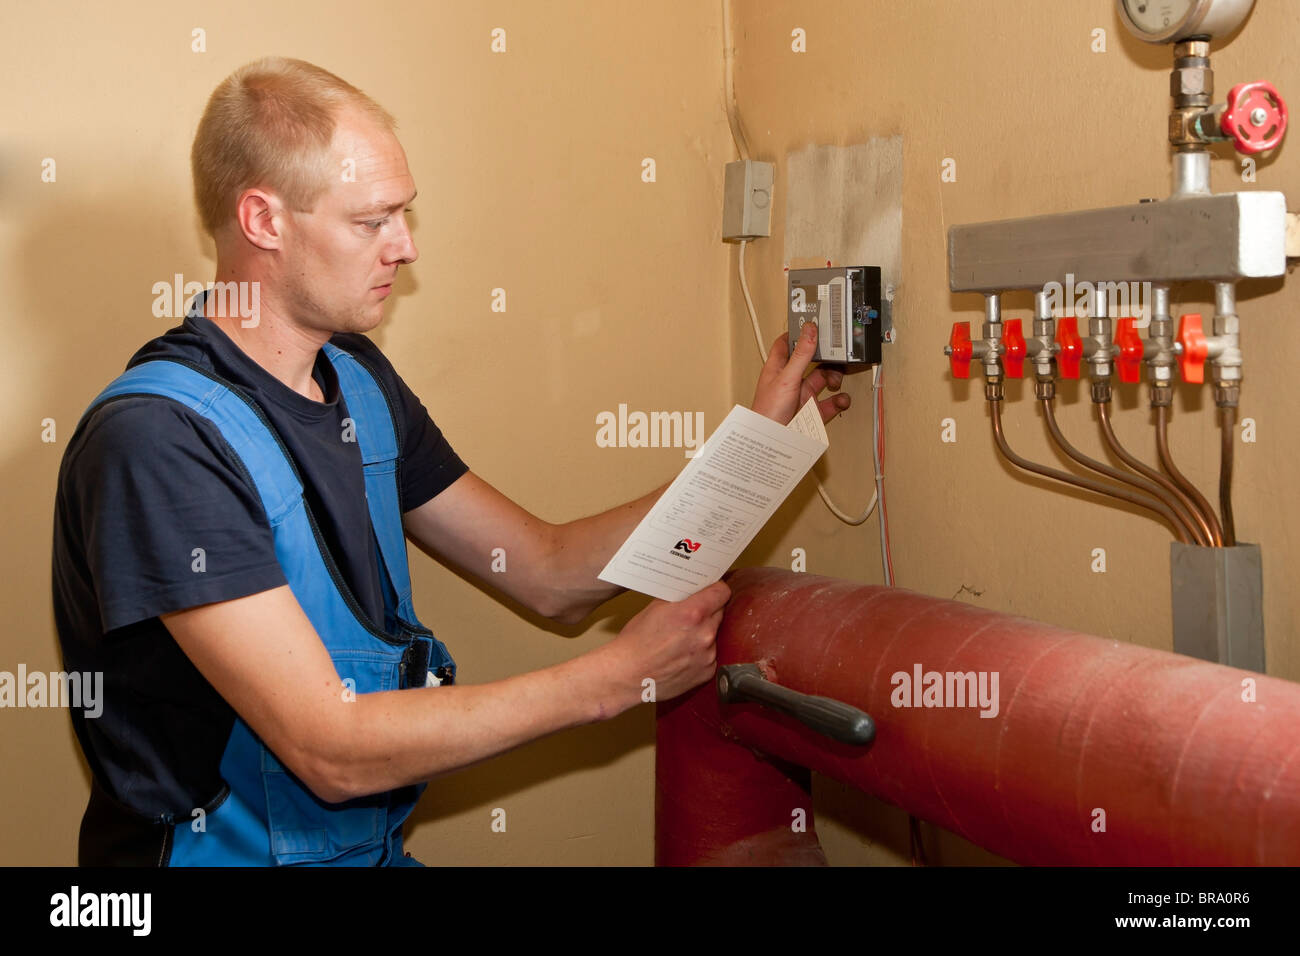 Heating and sanitary technician testing and adjusting the heating controller - Stock Image